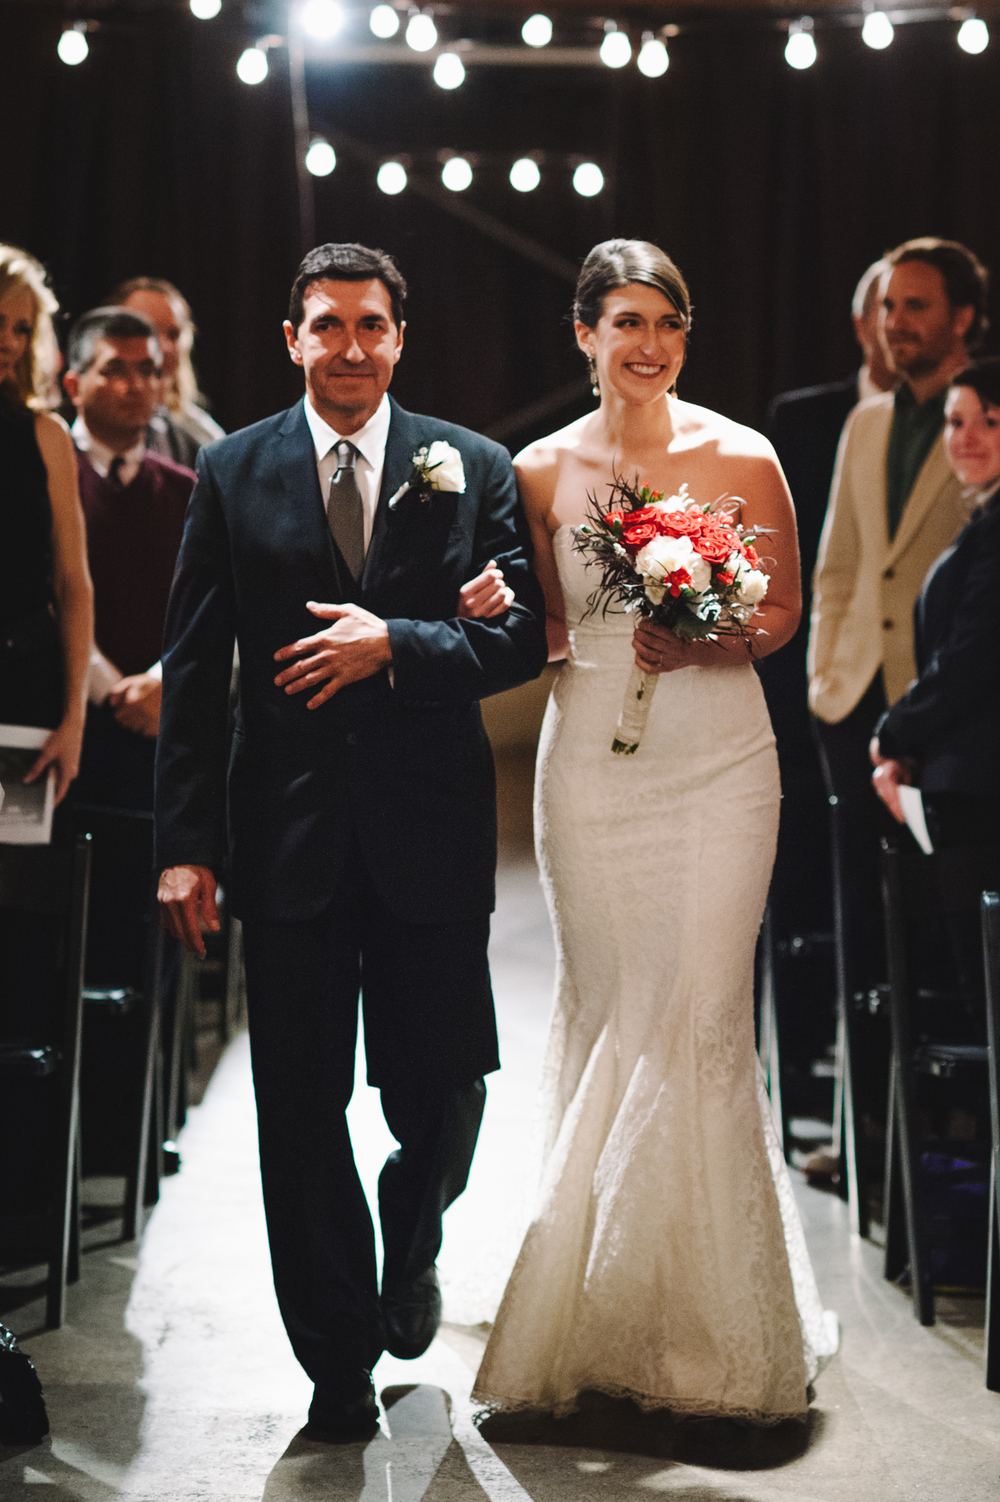 20160117_AmberZbitnoffPhotography_BG_MelroseMarketWedding_blog045_02441920web.jpg